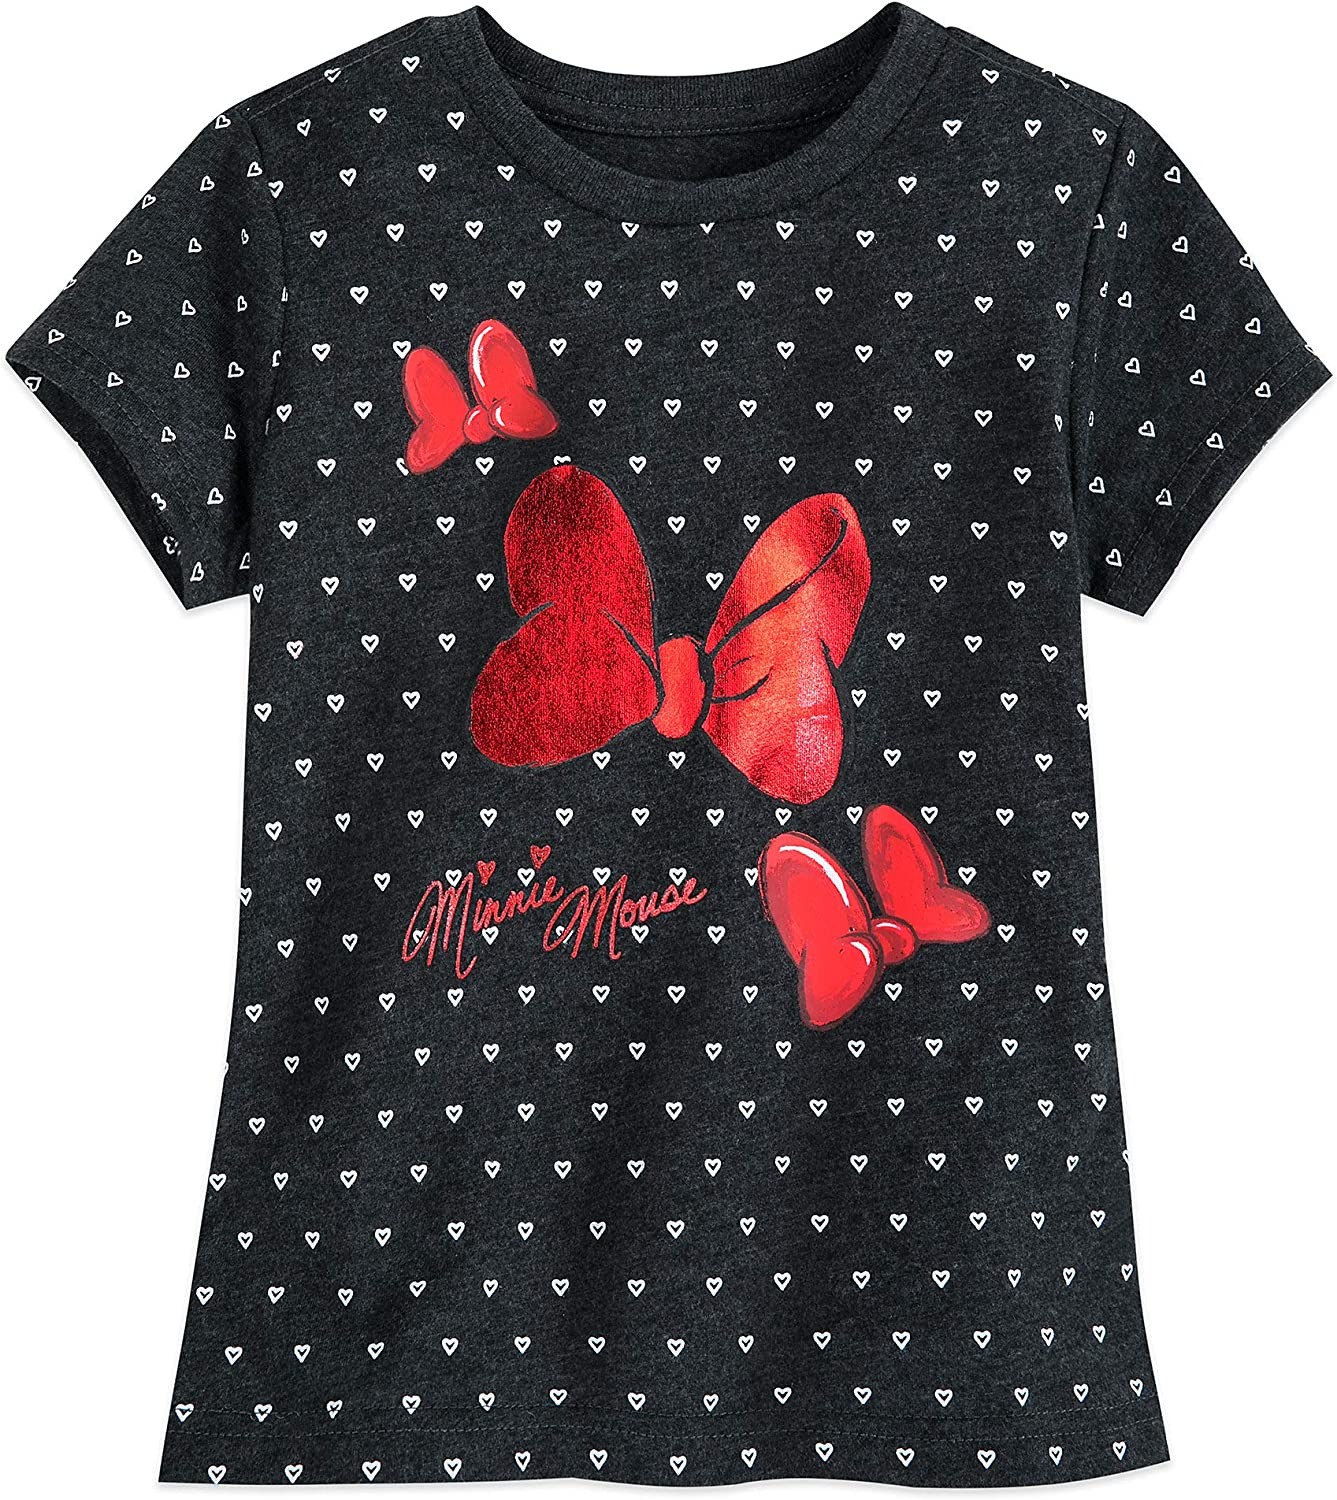 It/'s All About the Bow Applique bodysuit or T-shirt Short or Long Sleeve Minnie Mouse bow shirt